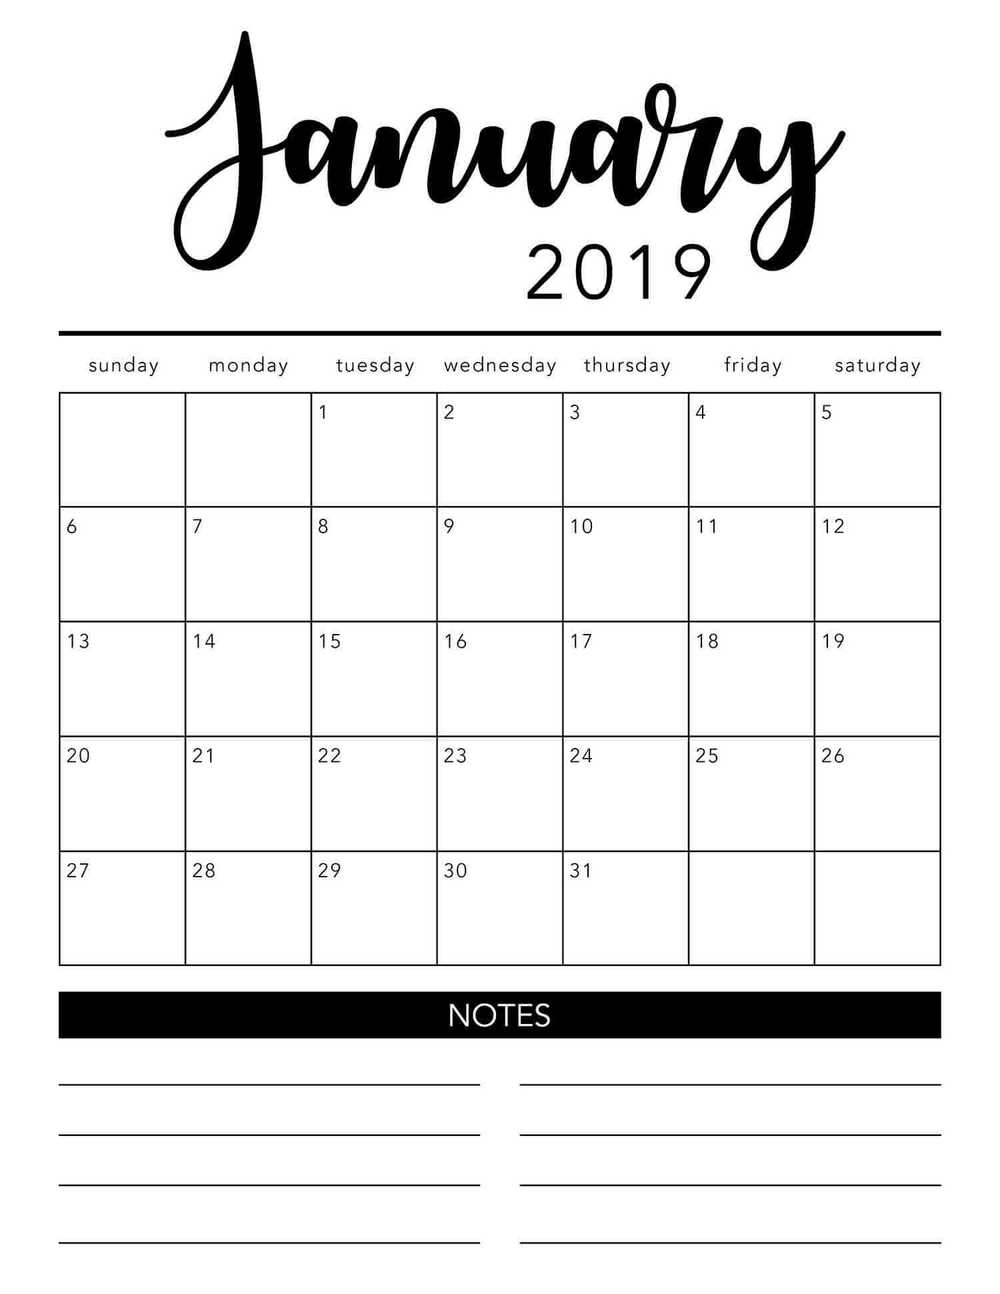 Free 2019 Printable Calendar Template (2 Colors!) - I Heart Naptime with Blank Calendar To Fill In Free